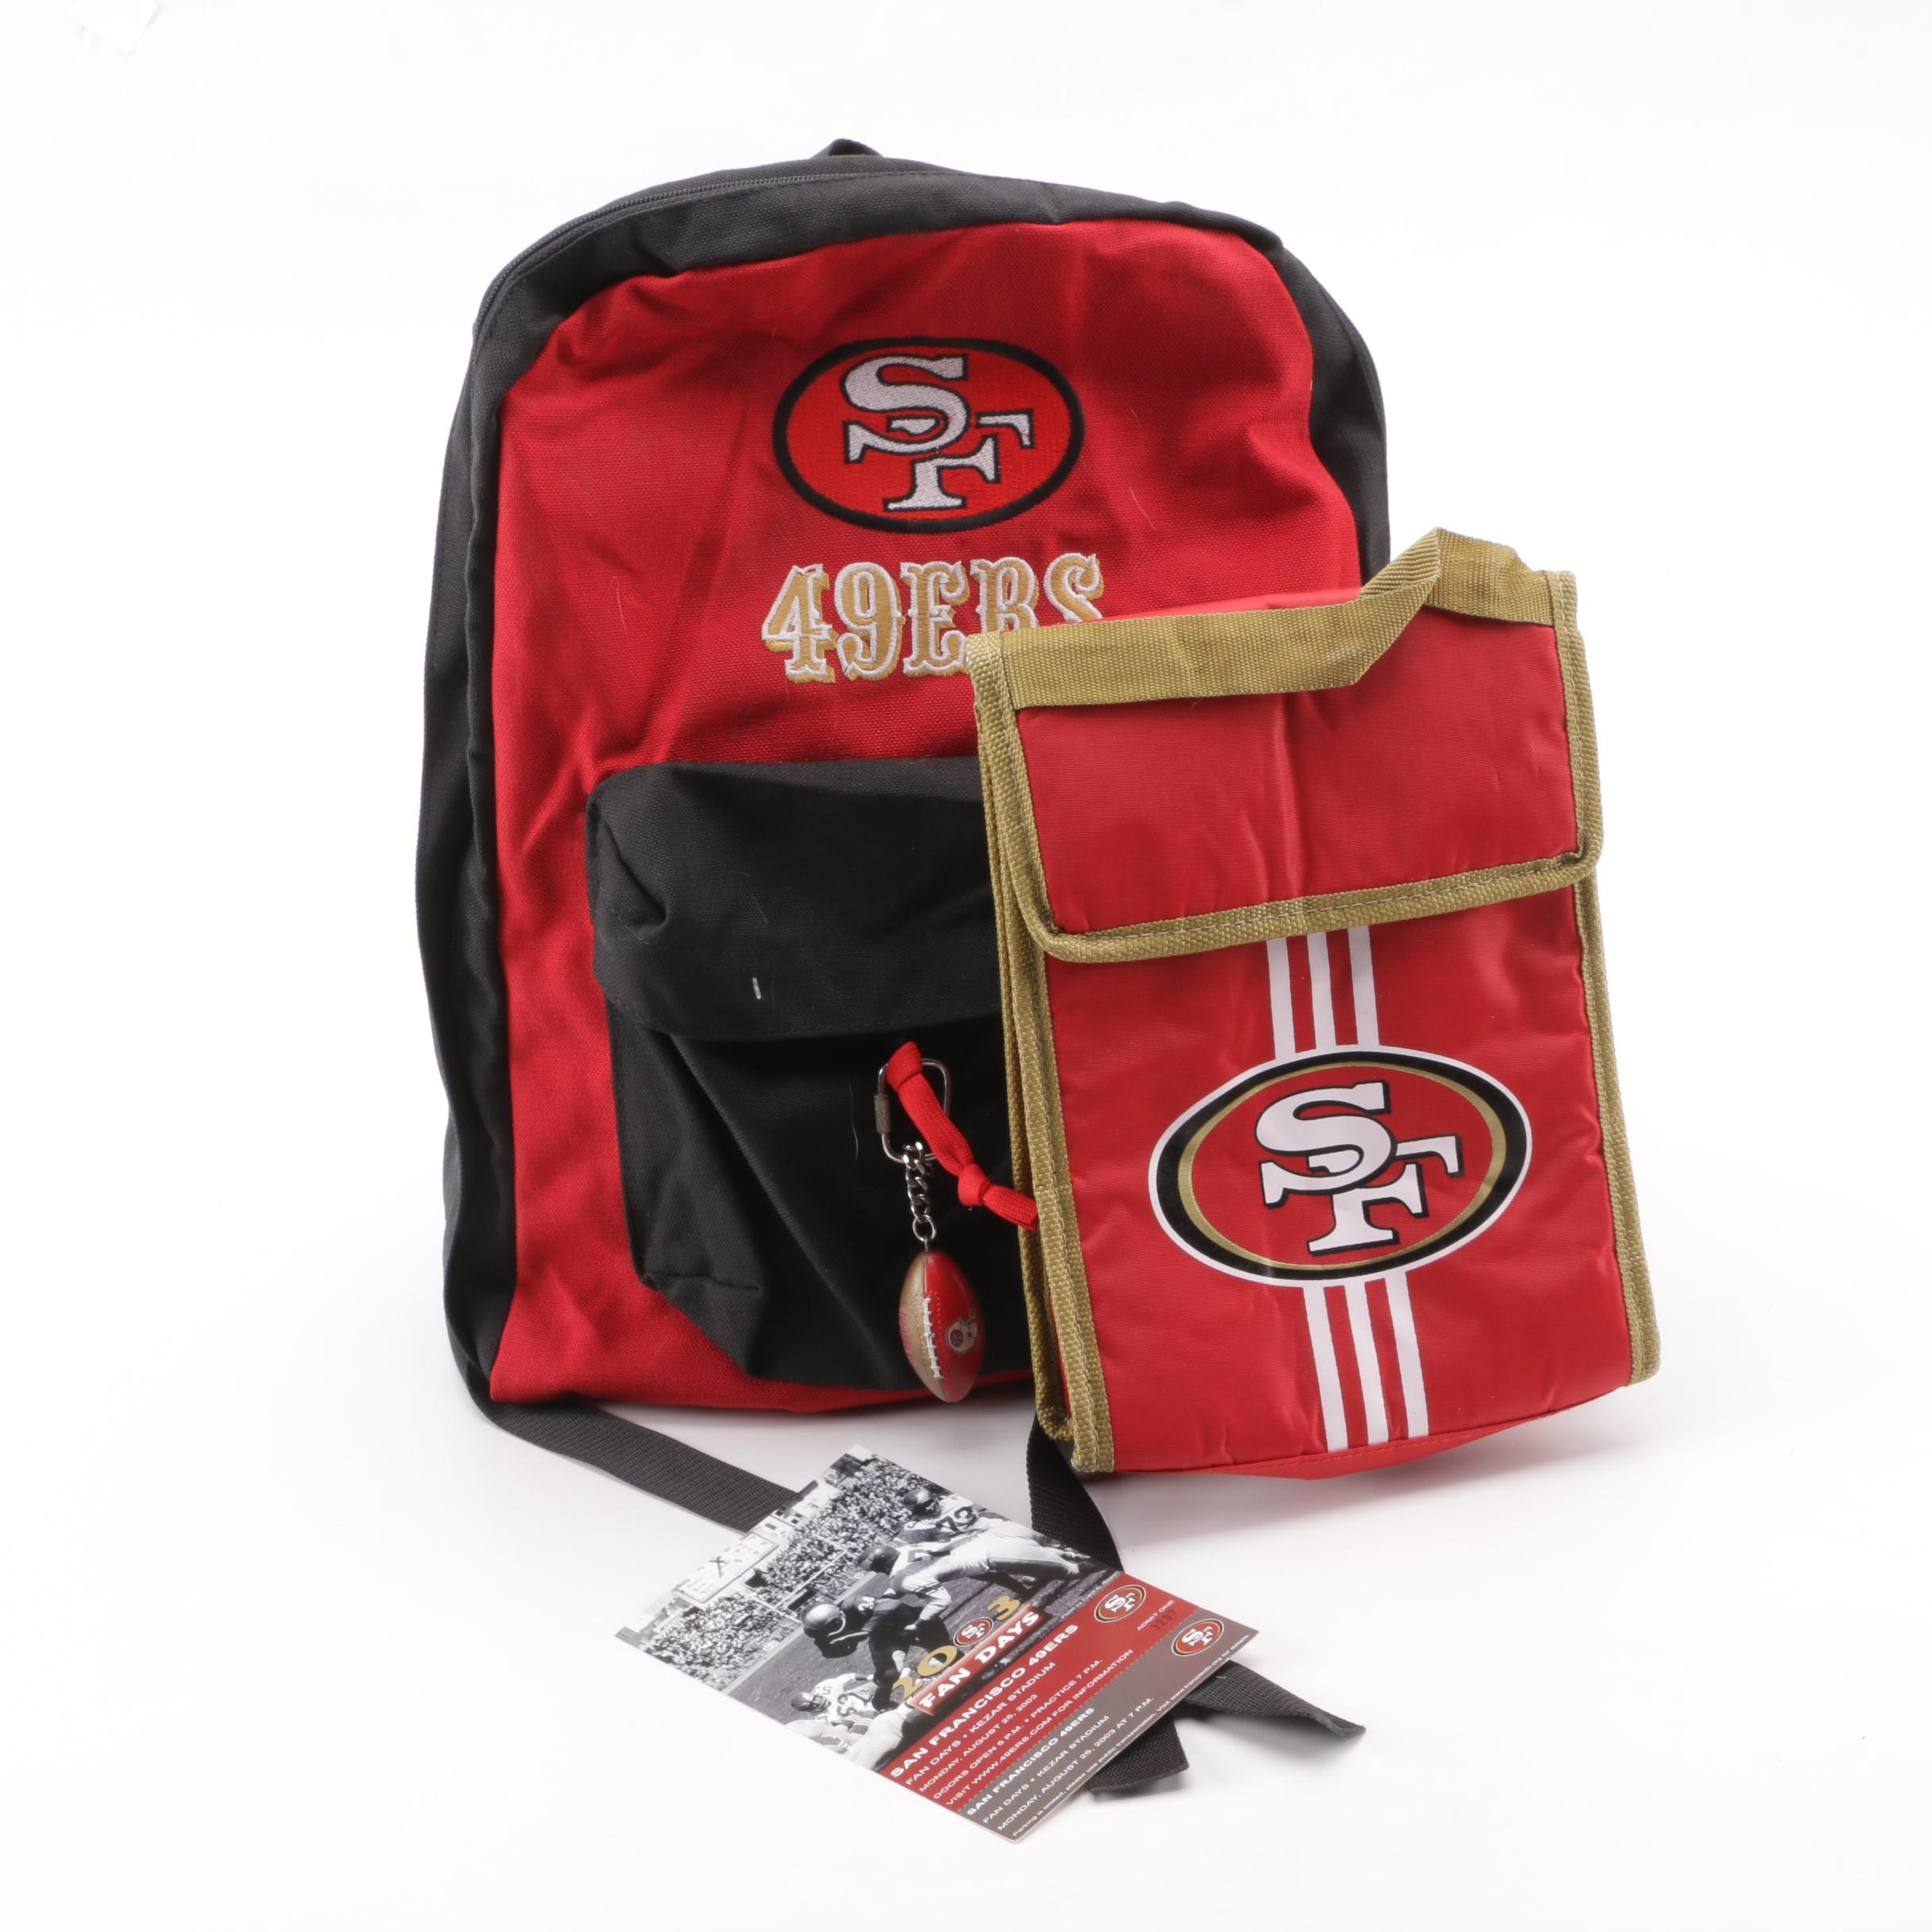 San Francisco 49ers Day Pack, Insulated Drink Sack and Fan Day Ticket